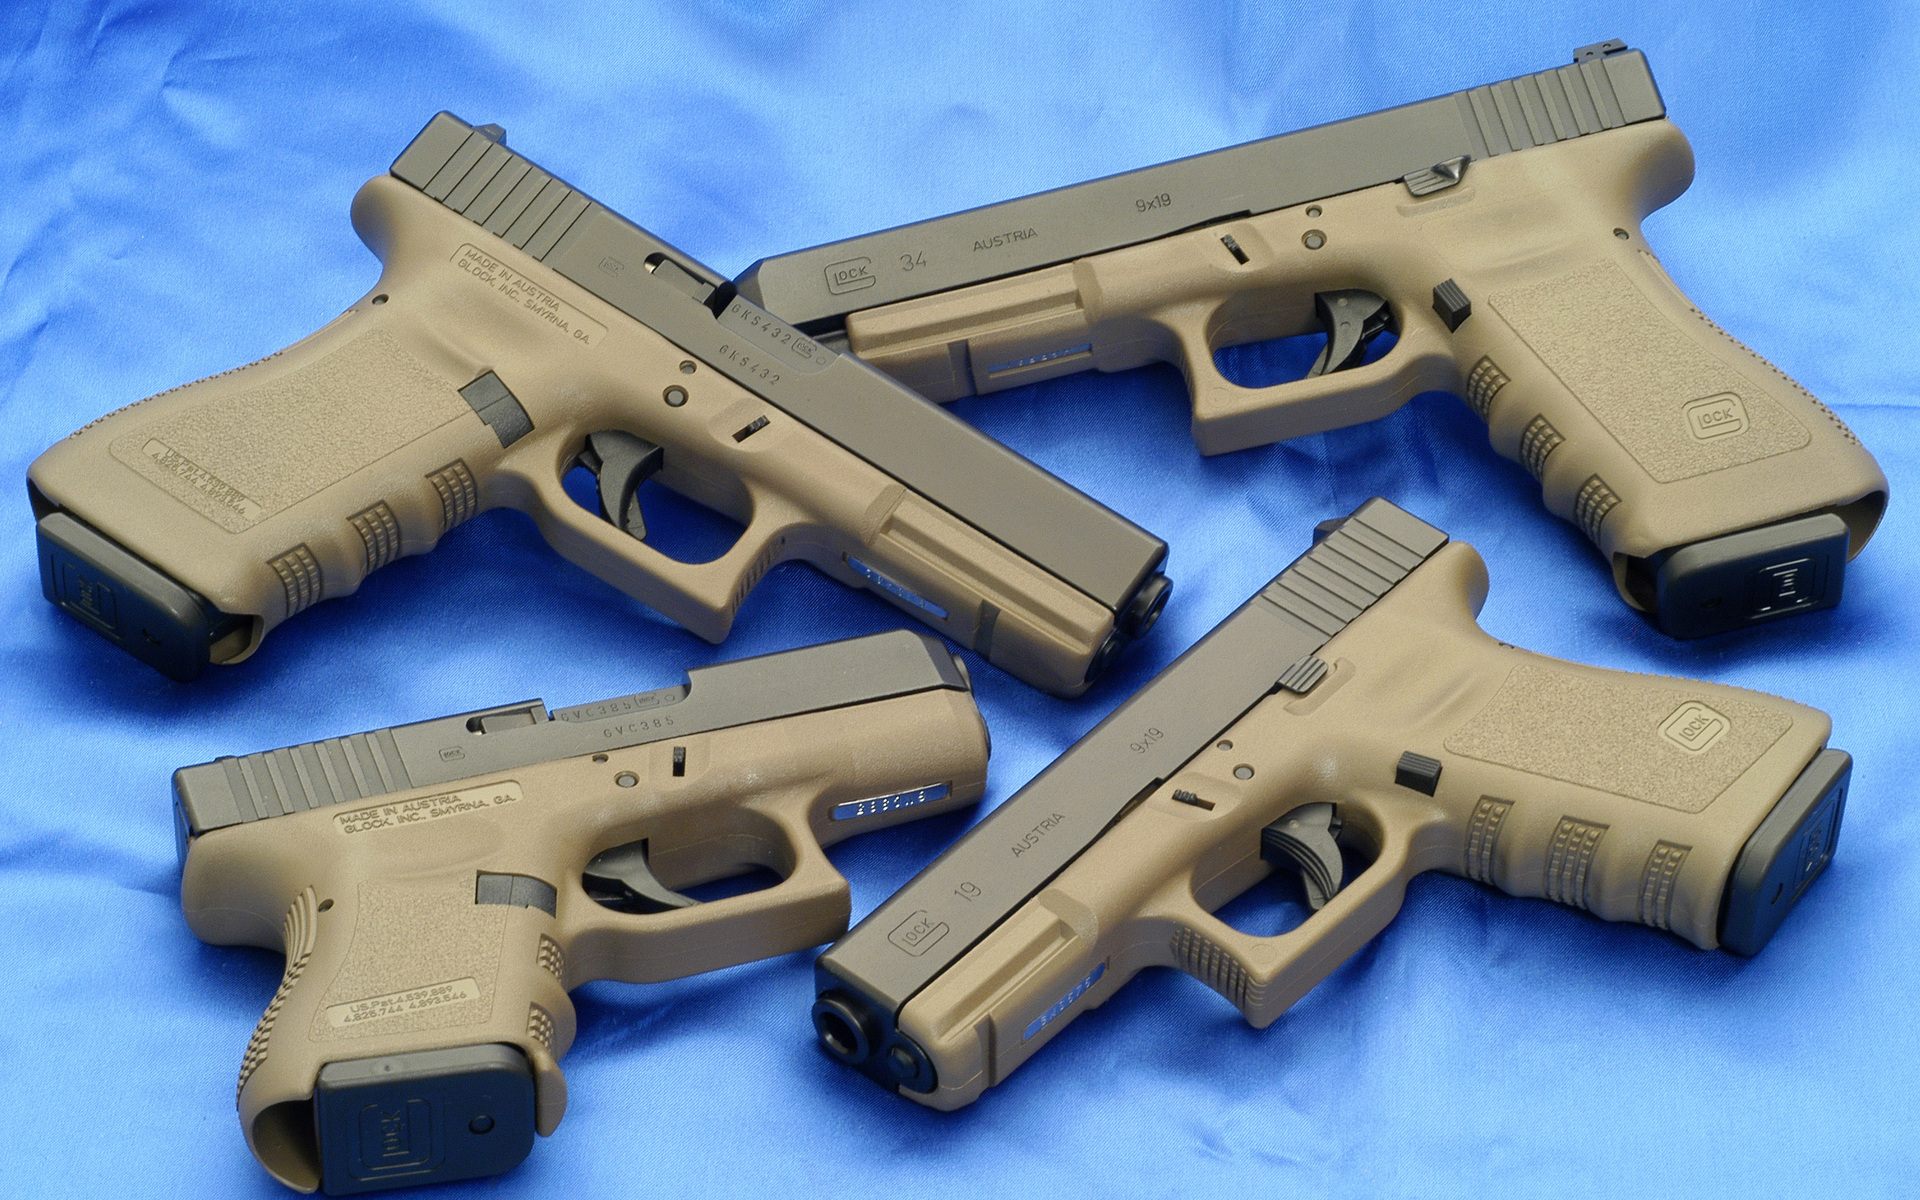 13 glock pistol hd wallpapers backgrounds wallpaper abyss